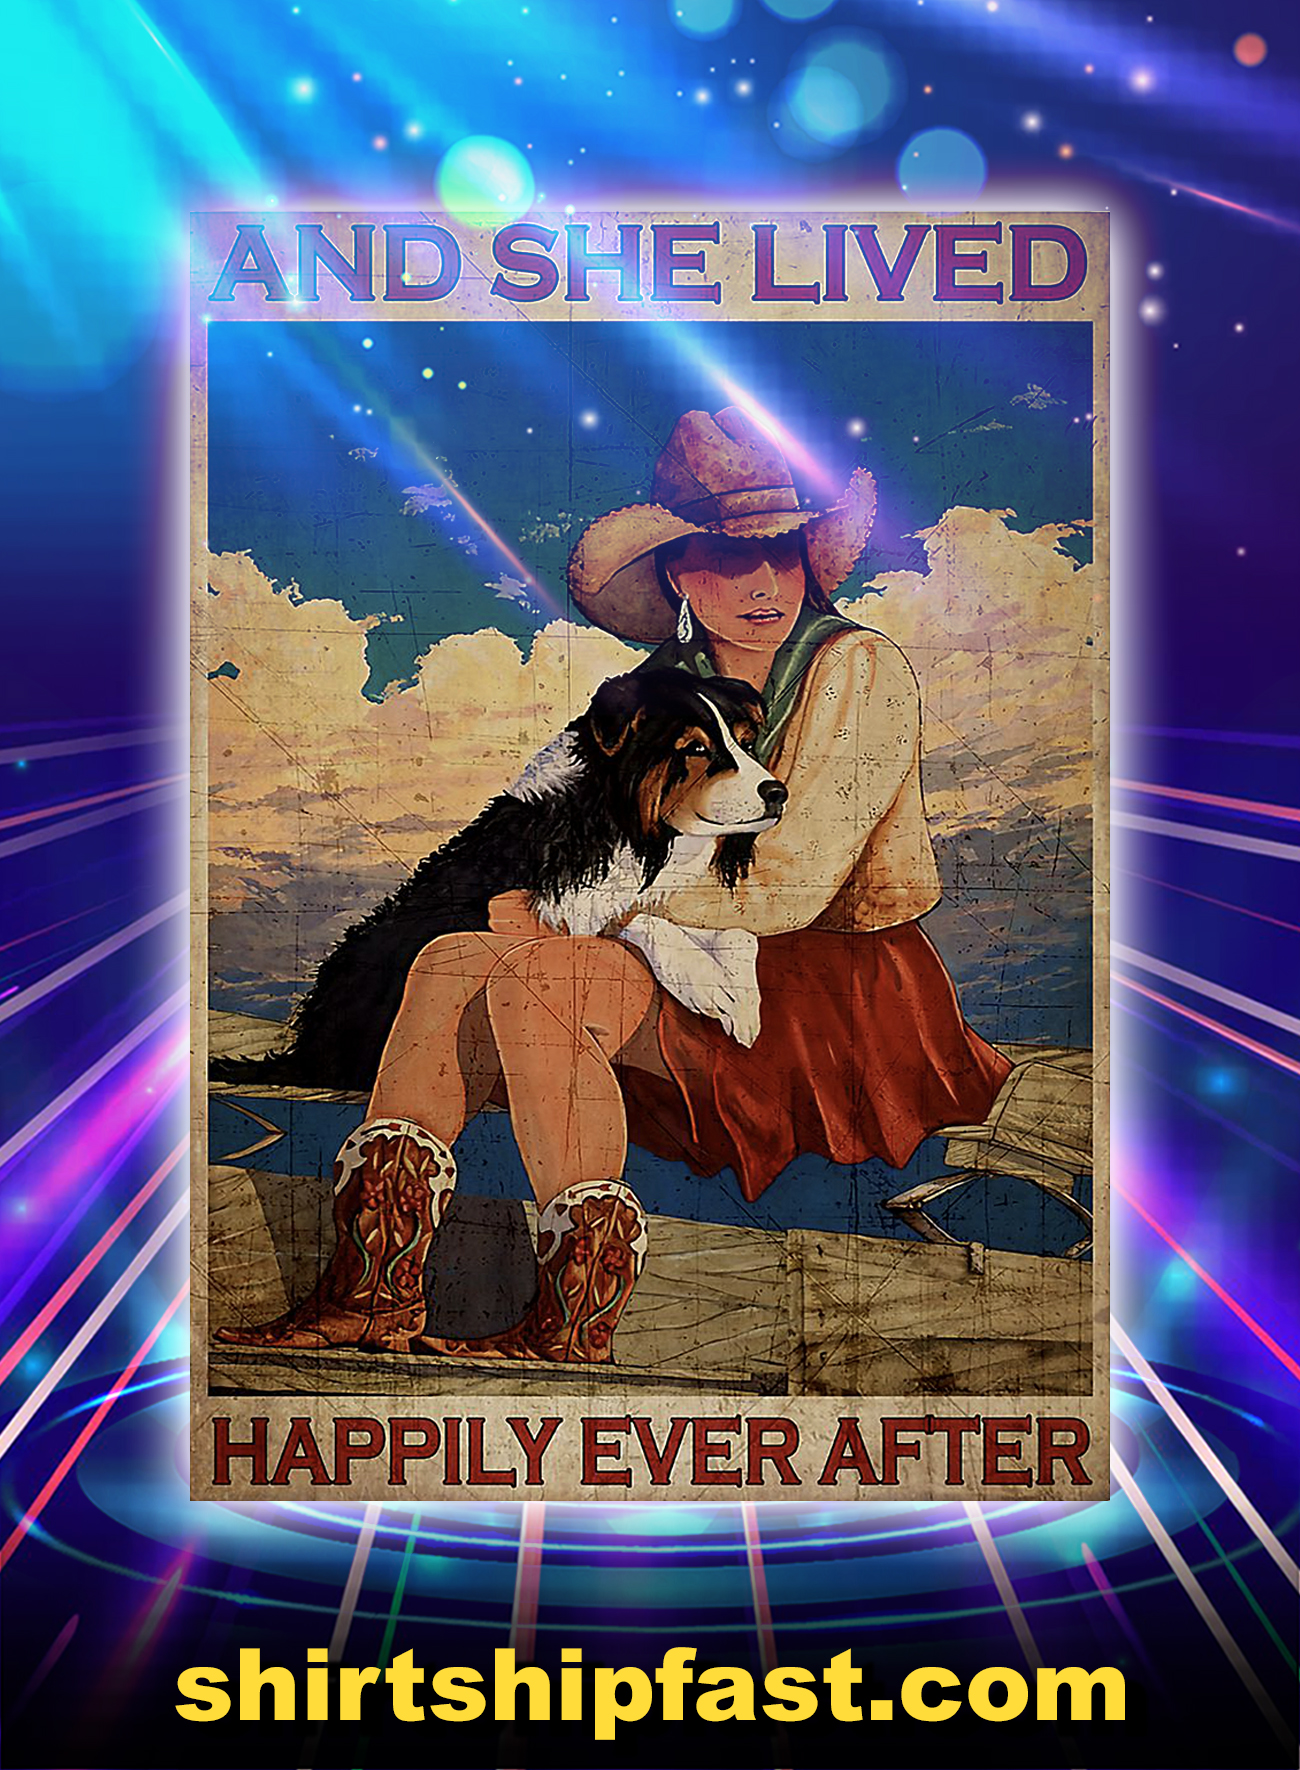 Cowgirl and dog and she lived happily ever after poster - A4